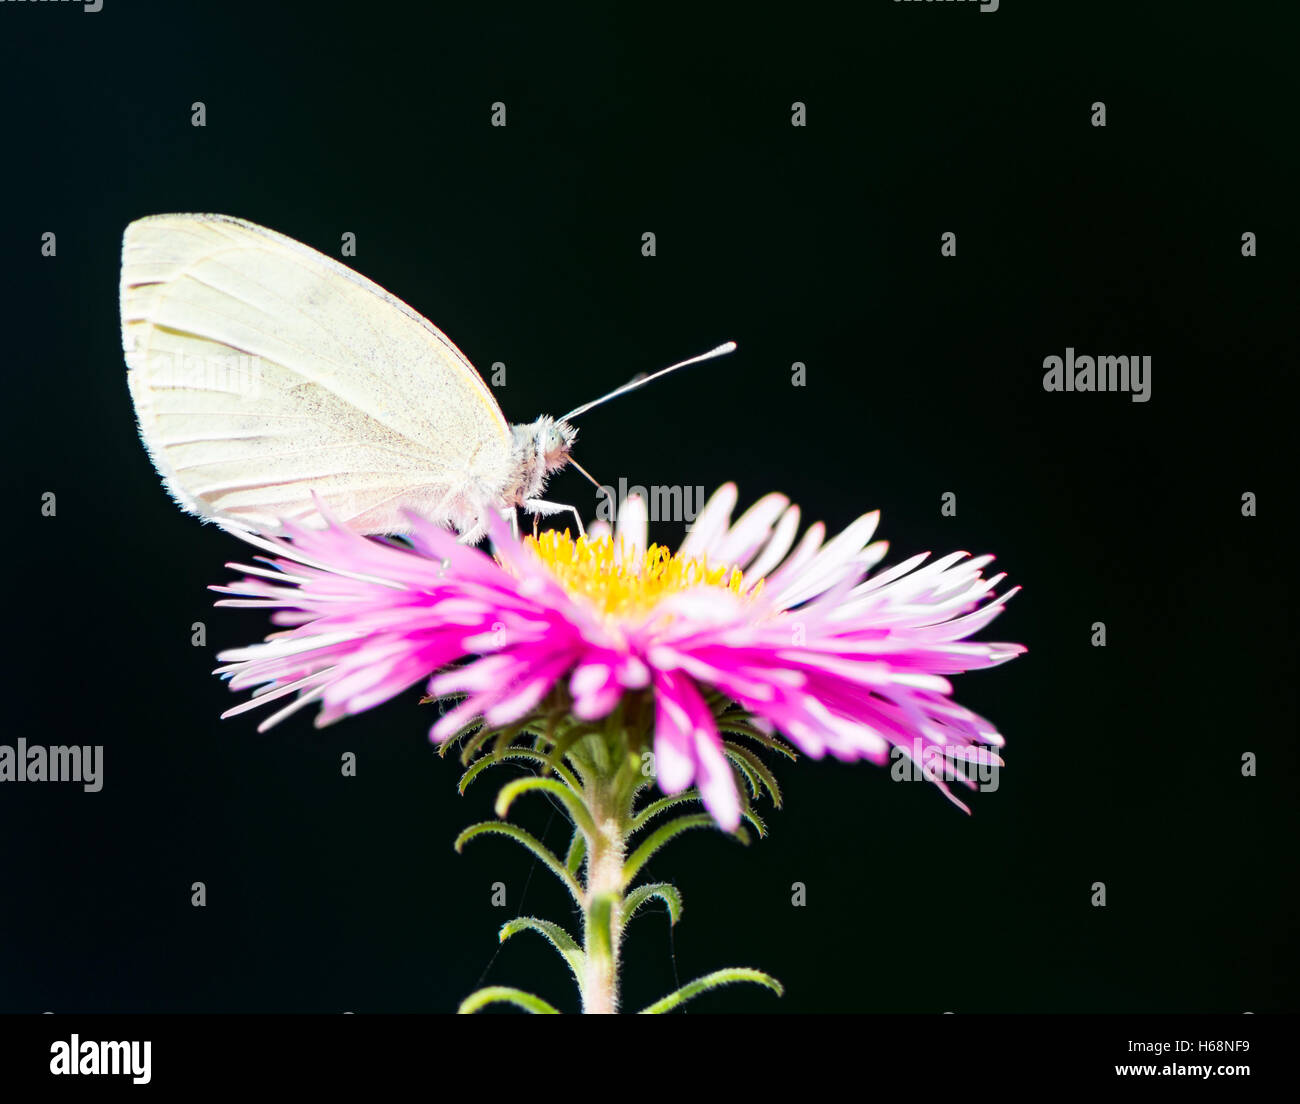 White cabbage butterlfy on a pink aster flower blossom - Stock Image